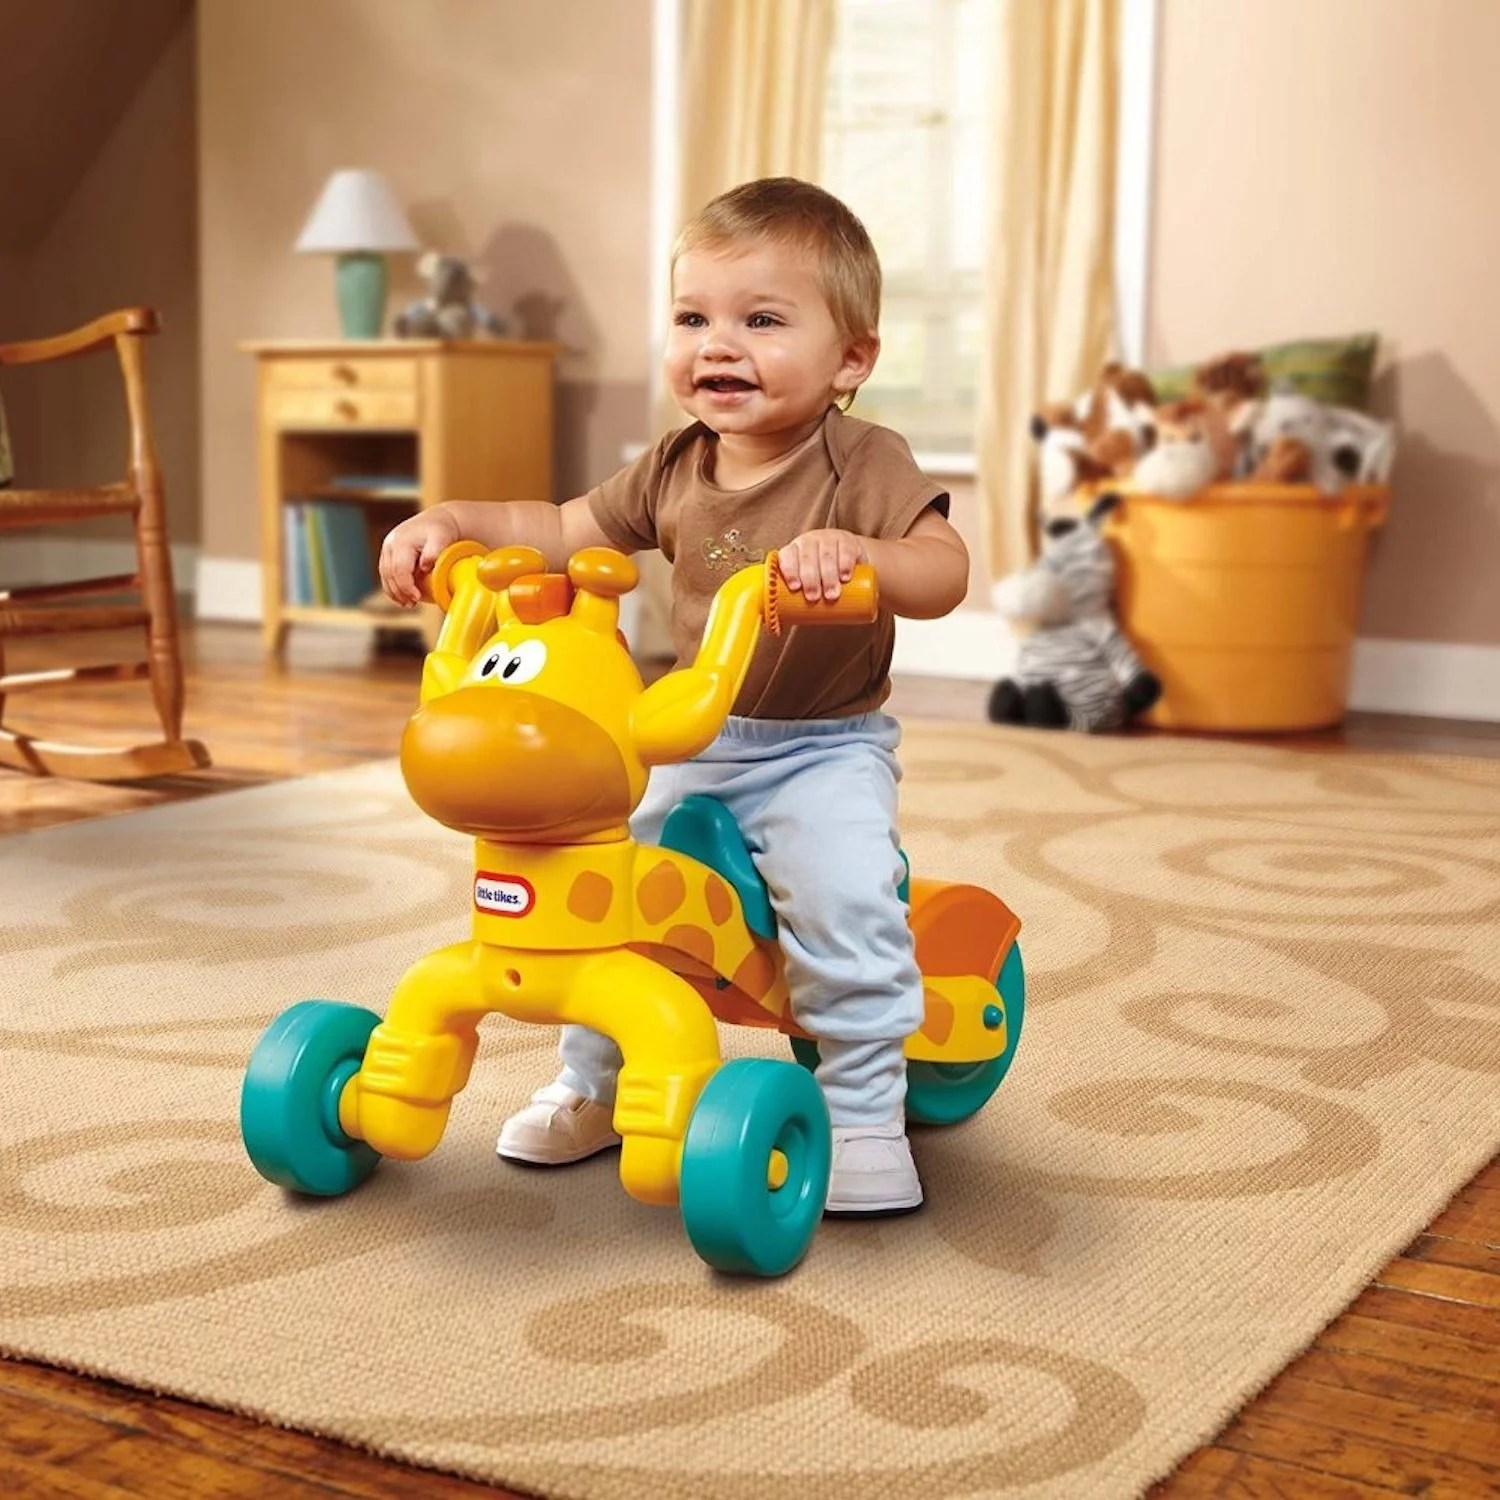 45 Of The Best Toys And Gift Ideas For A 1 Year Old In 2021 Popsugar Family